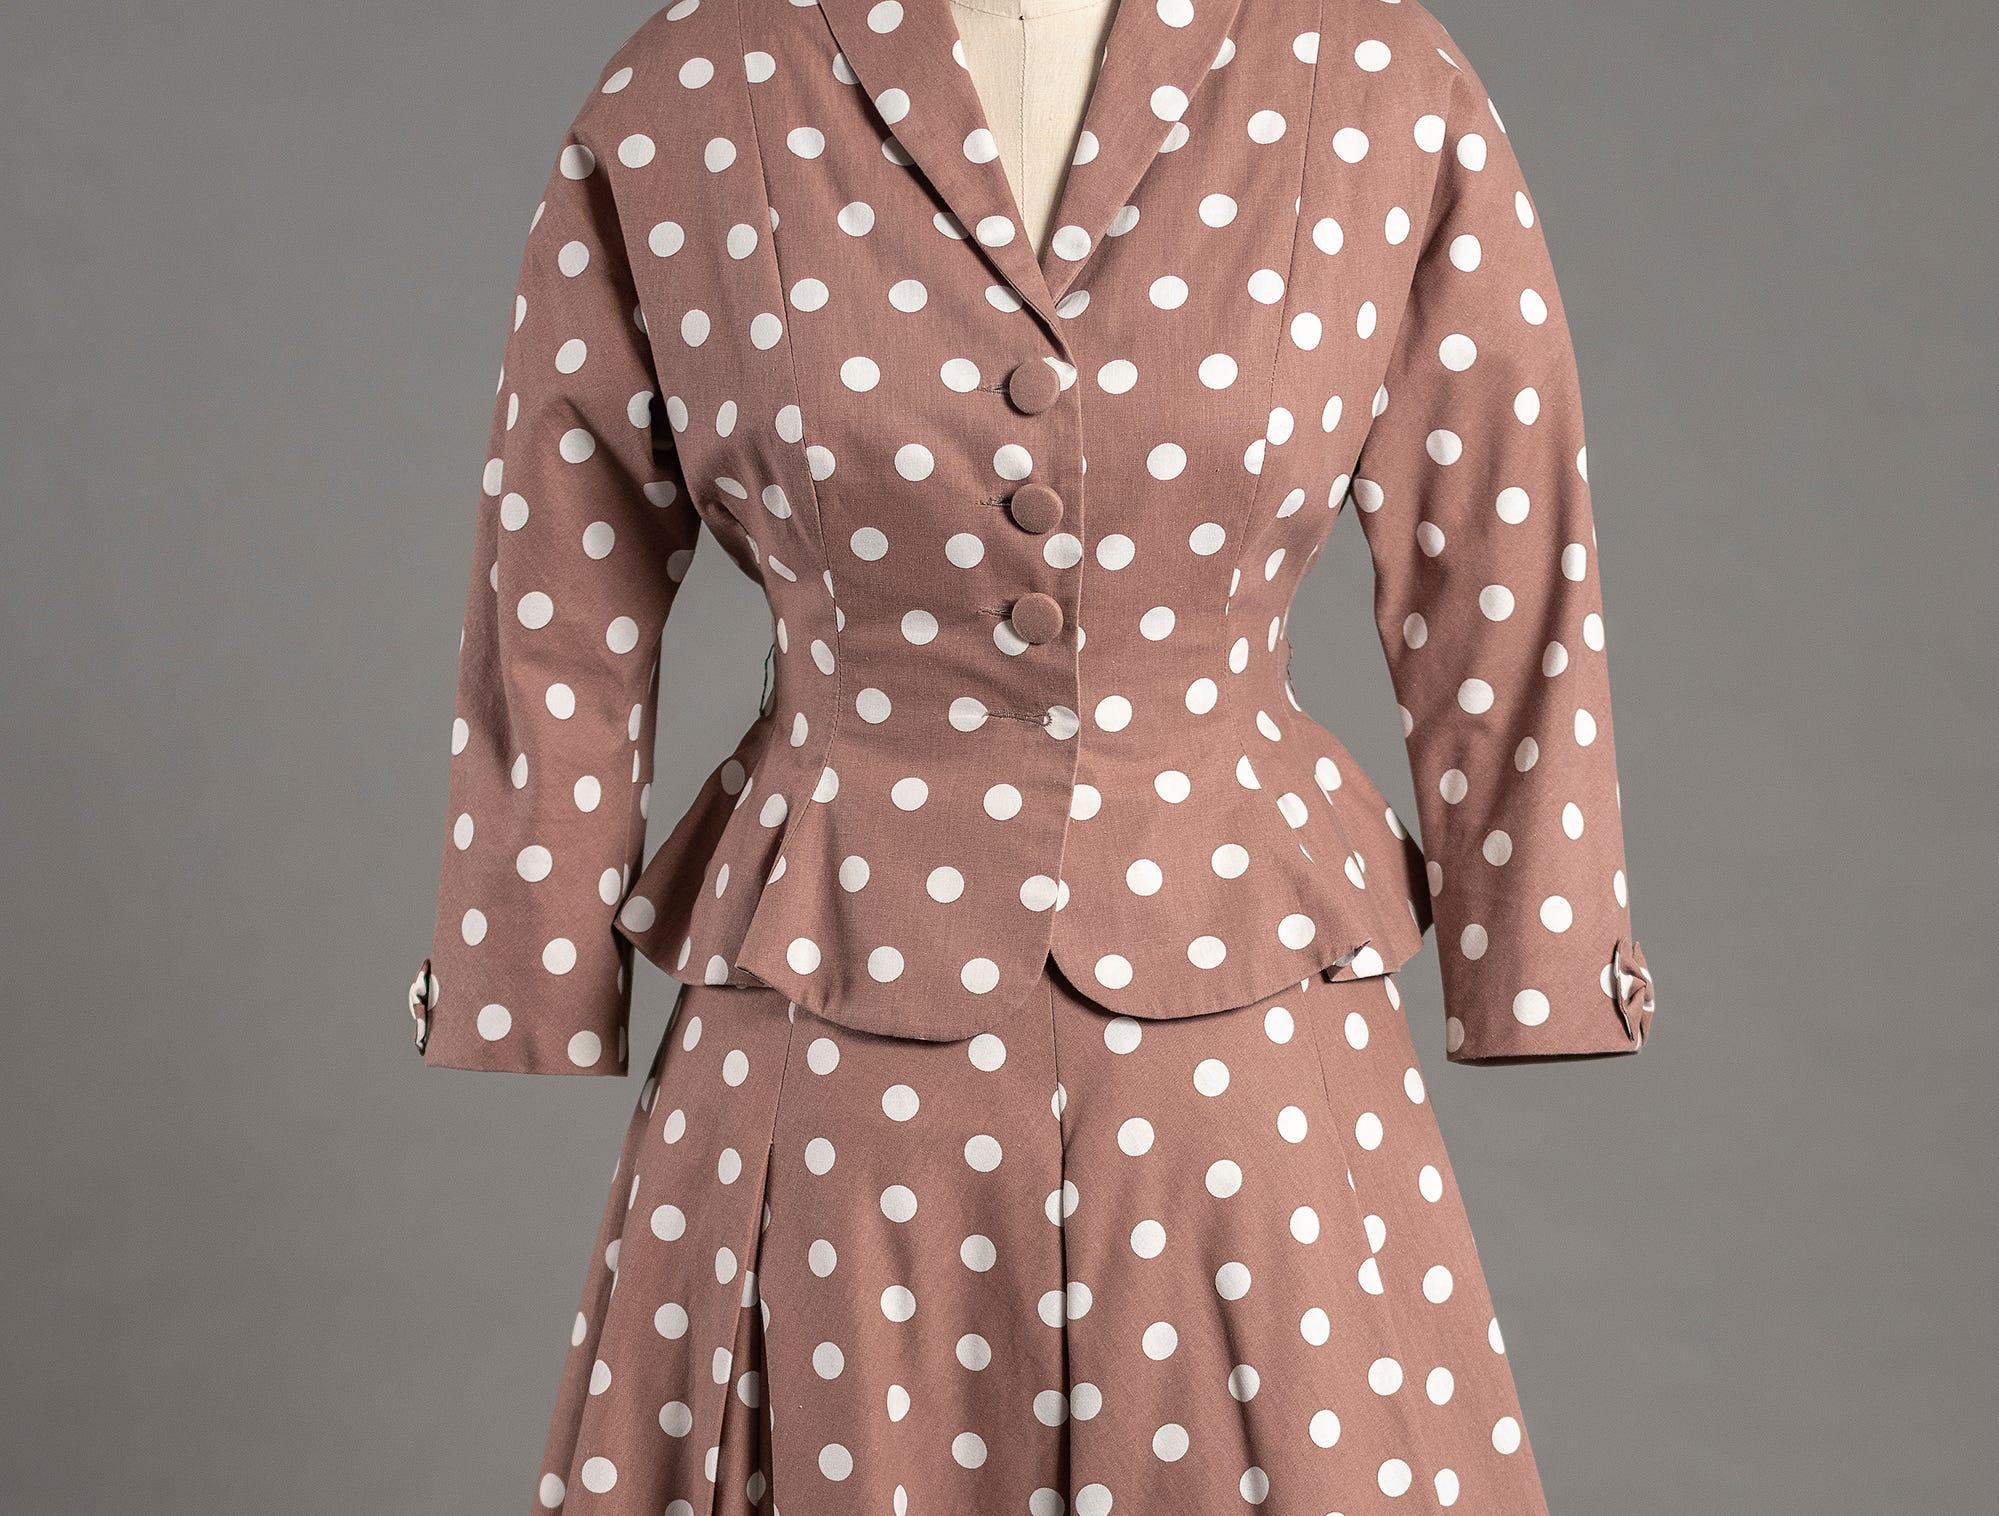 Michele Clapton designed this polka-dotted suit for Claire Foy's Princess Elizabeth to wear while visiting Kenya in 1952 in 'The Crown.'